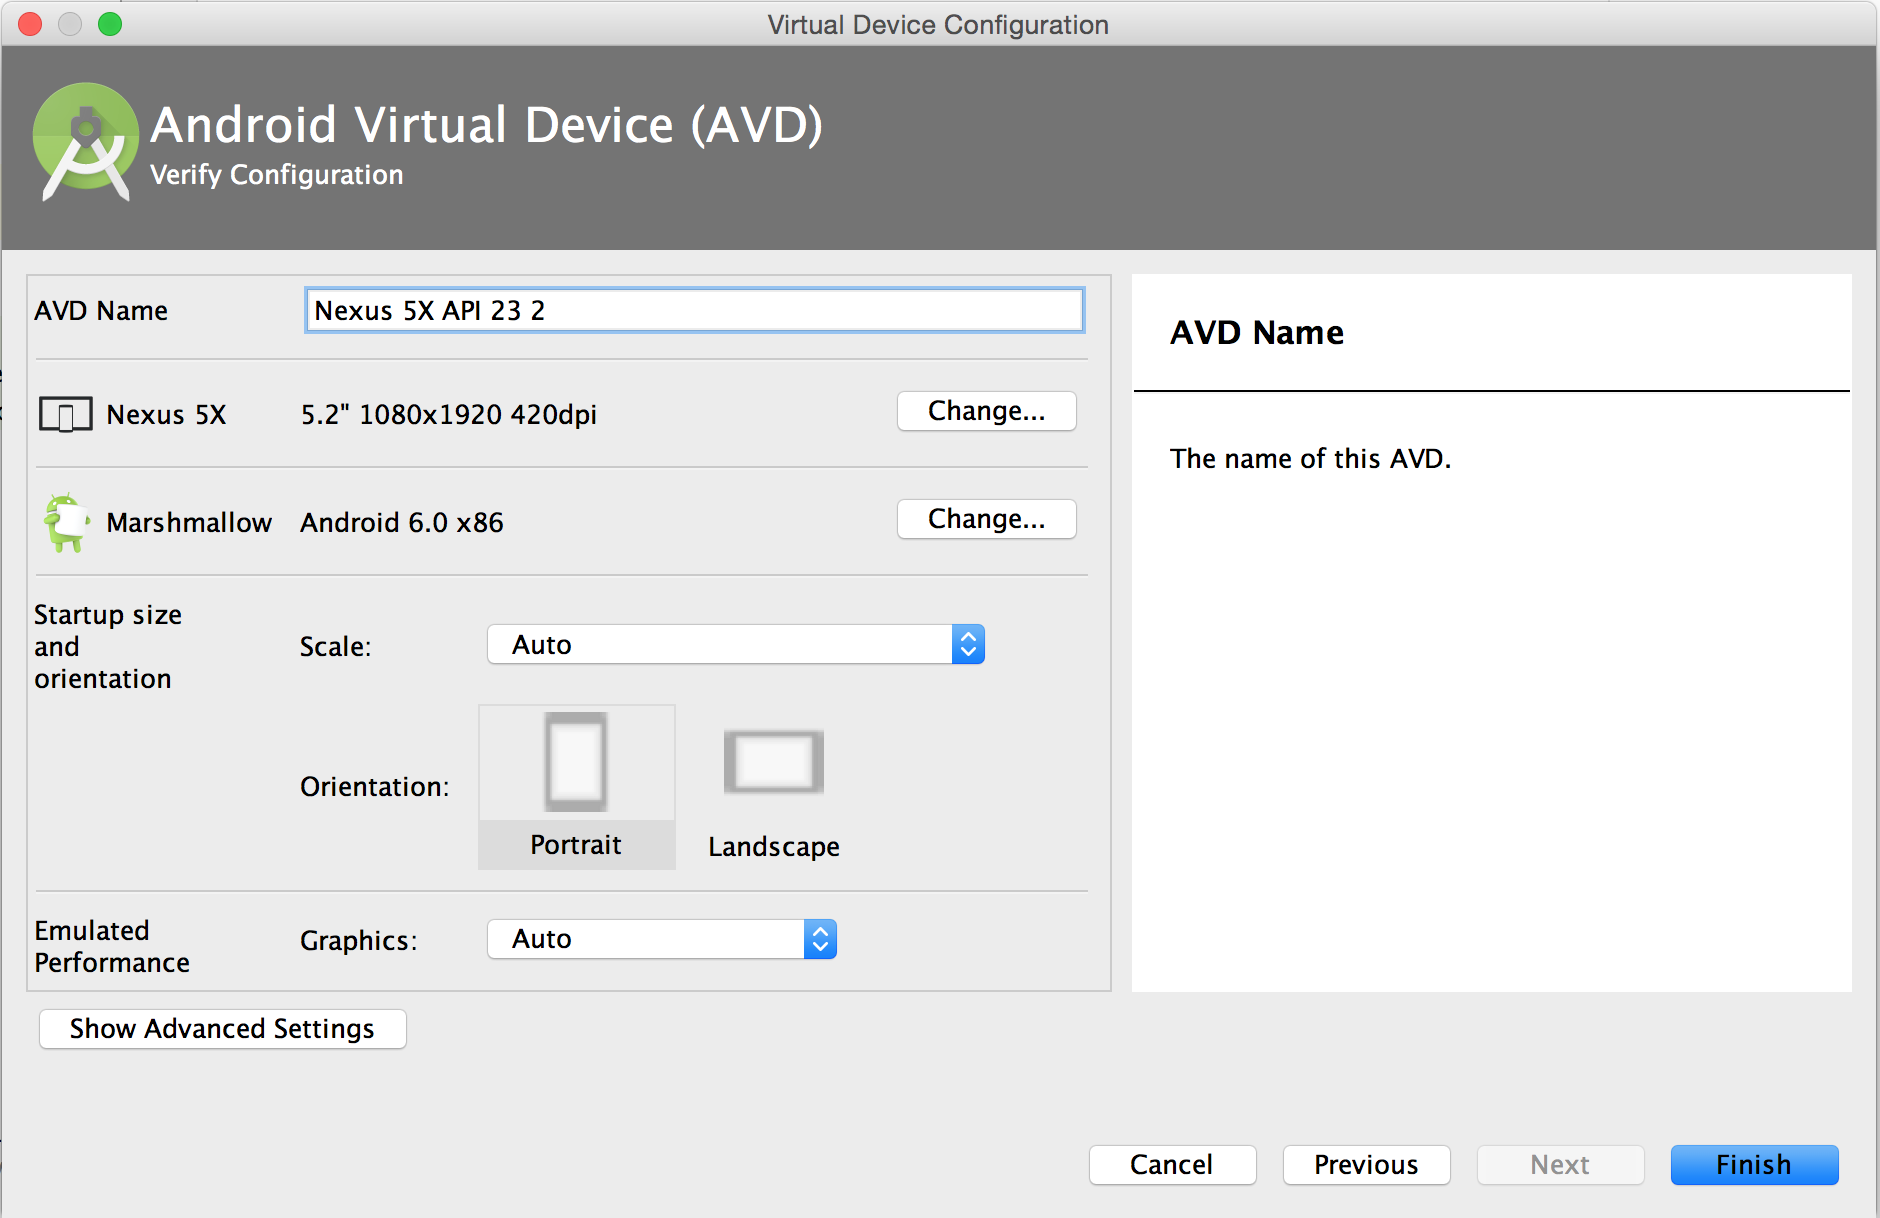 AVD Manager 的 Verify Configuration 页面